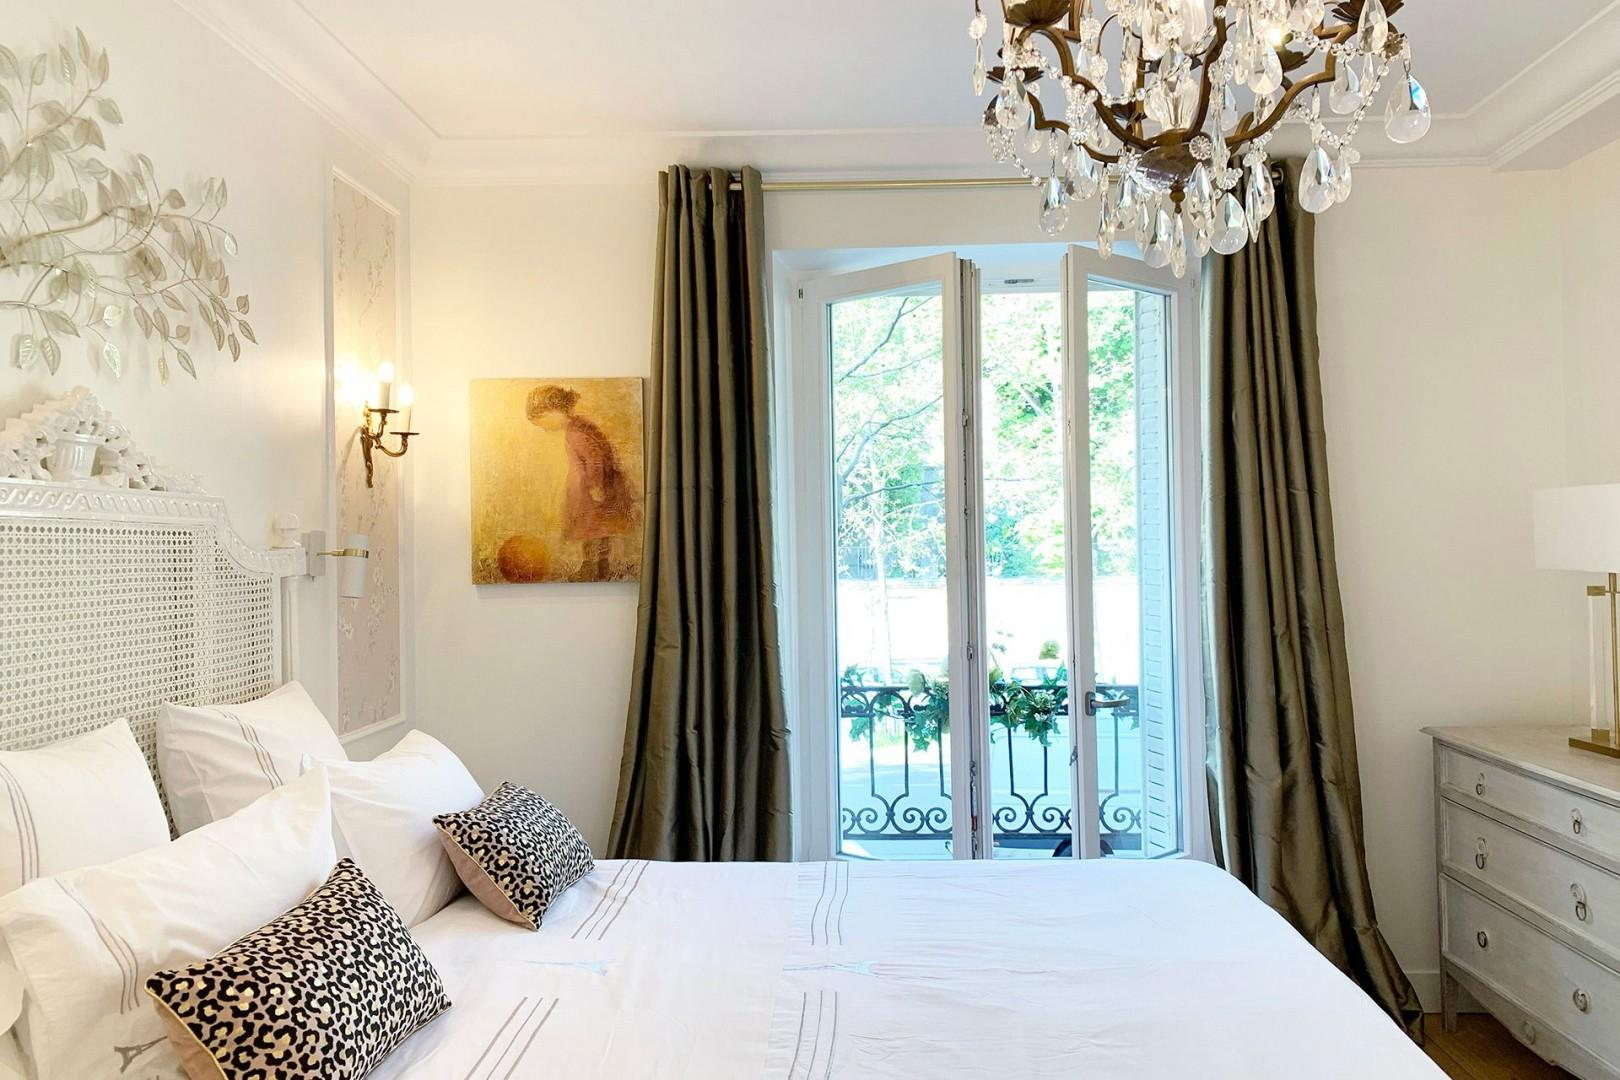 It will be easy to relax in the romantic bedroom 1 with a comfortable bed and elegant decor.